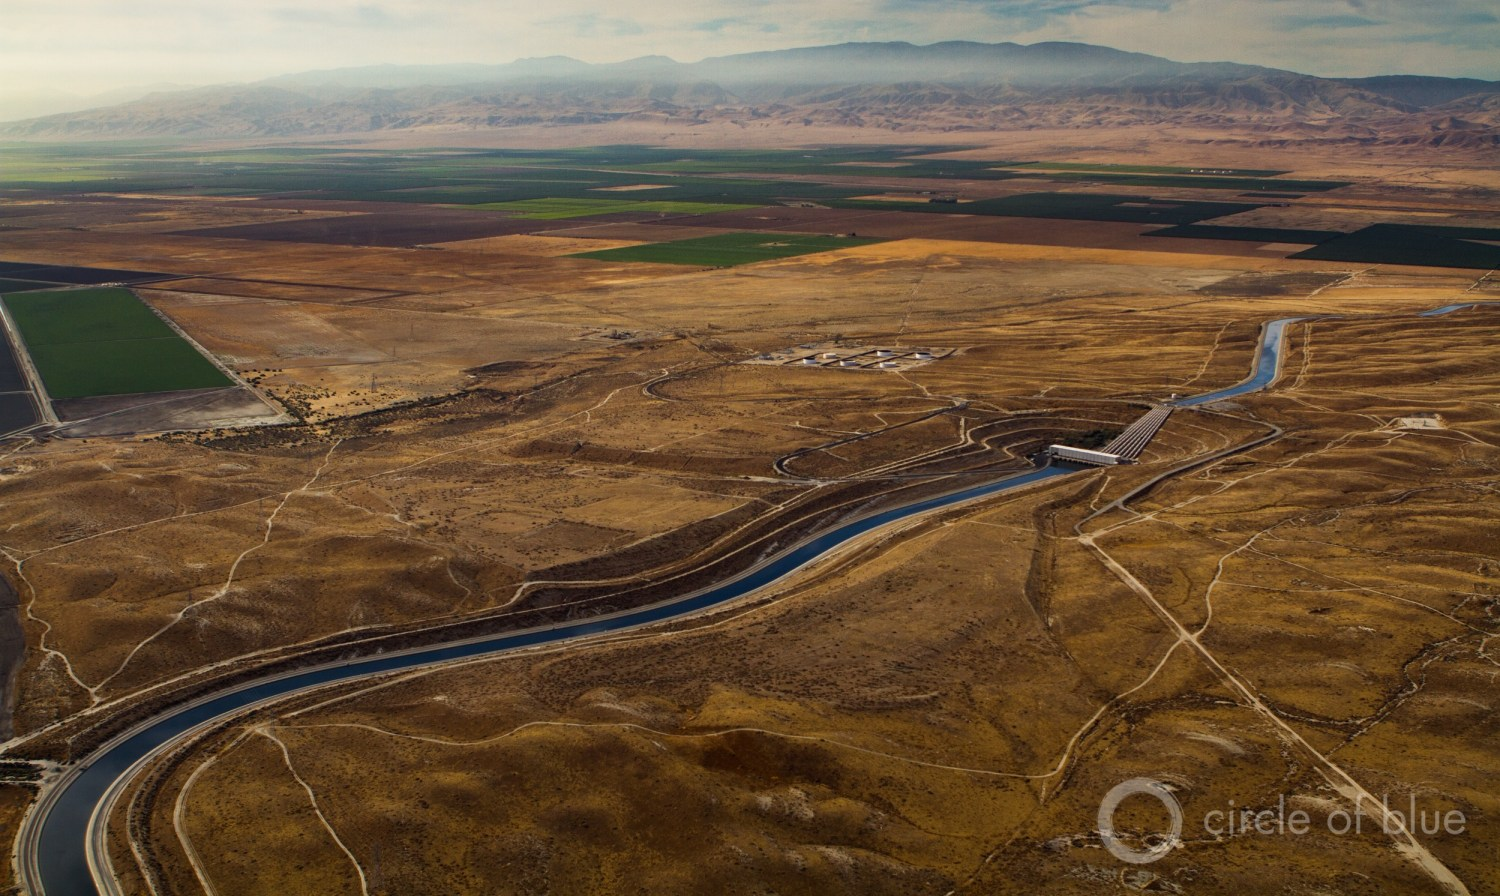 California's Central Valley is the heart of the state's farming and oil industries. Stanford researchers found significantly more fresh groundwater beneath the valley the deeper they looked. Photo © J. Carl Ganter / Circle of Blue